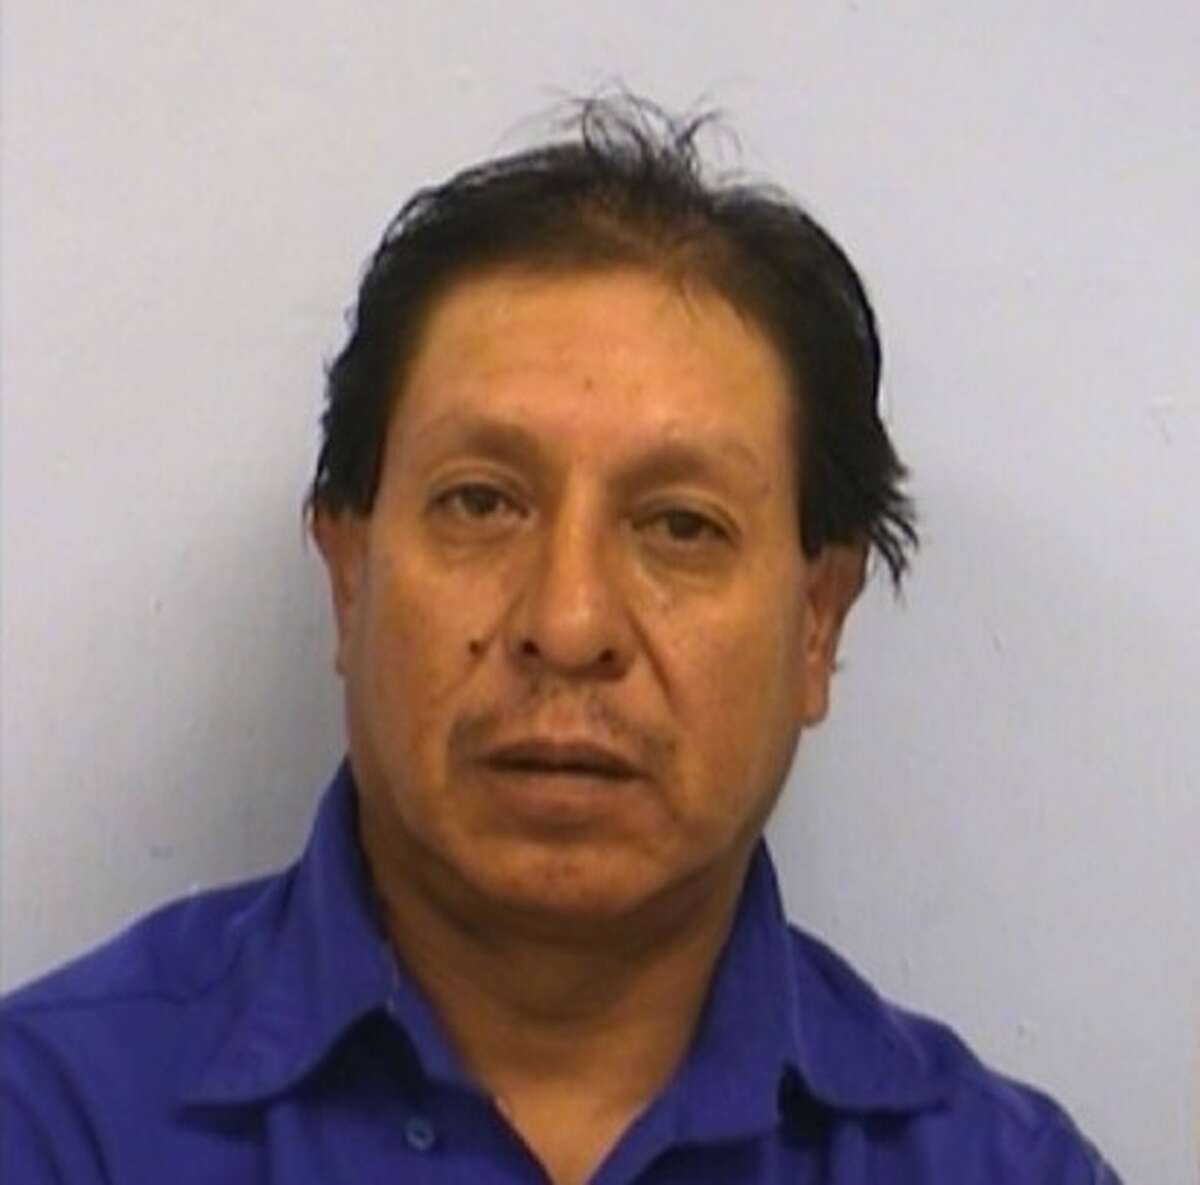 Manuel Luna-Camacho, 51, was arrested and charged with DWI. Click through the slideshow to see how many people were arrested in Houston in August for drunken driving.